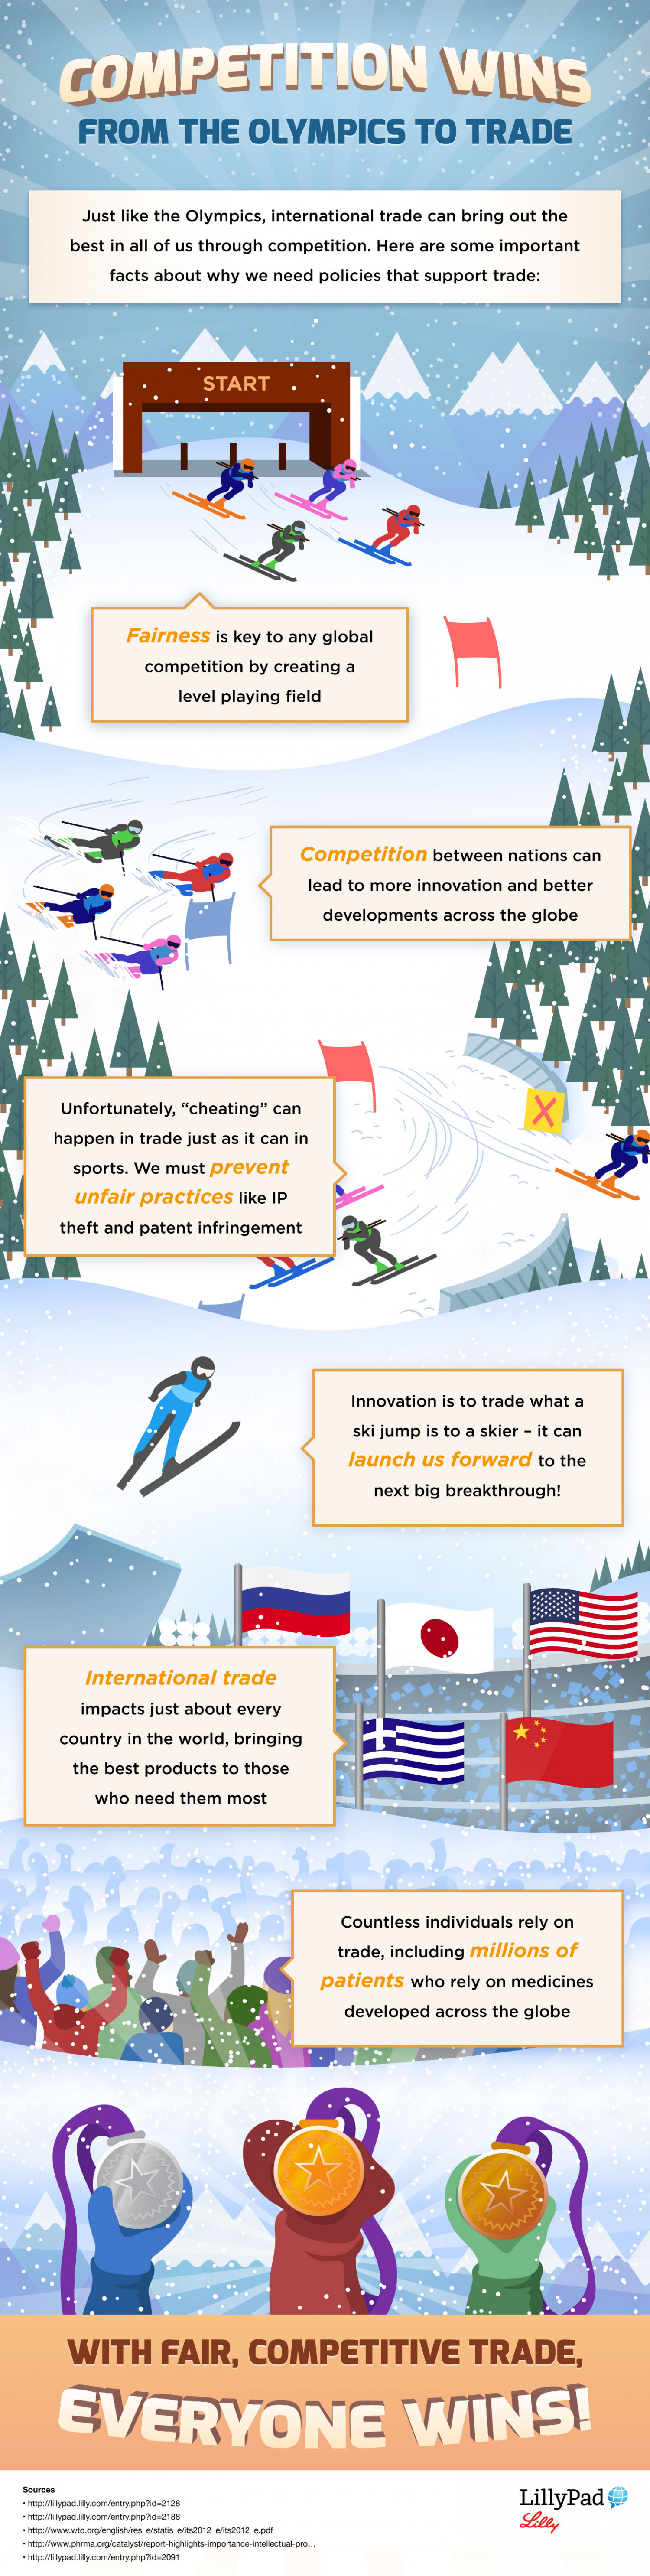 Competition Wins from the Olympics to Trade Infographic